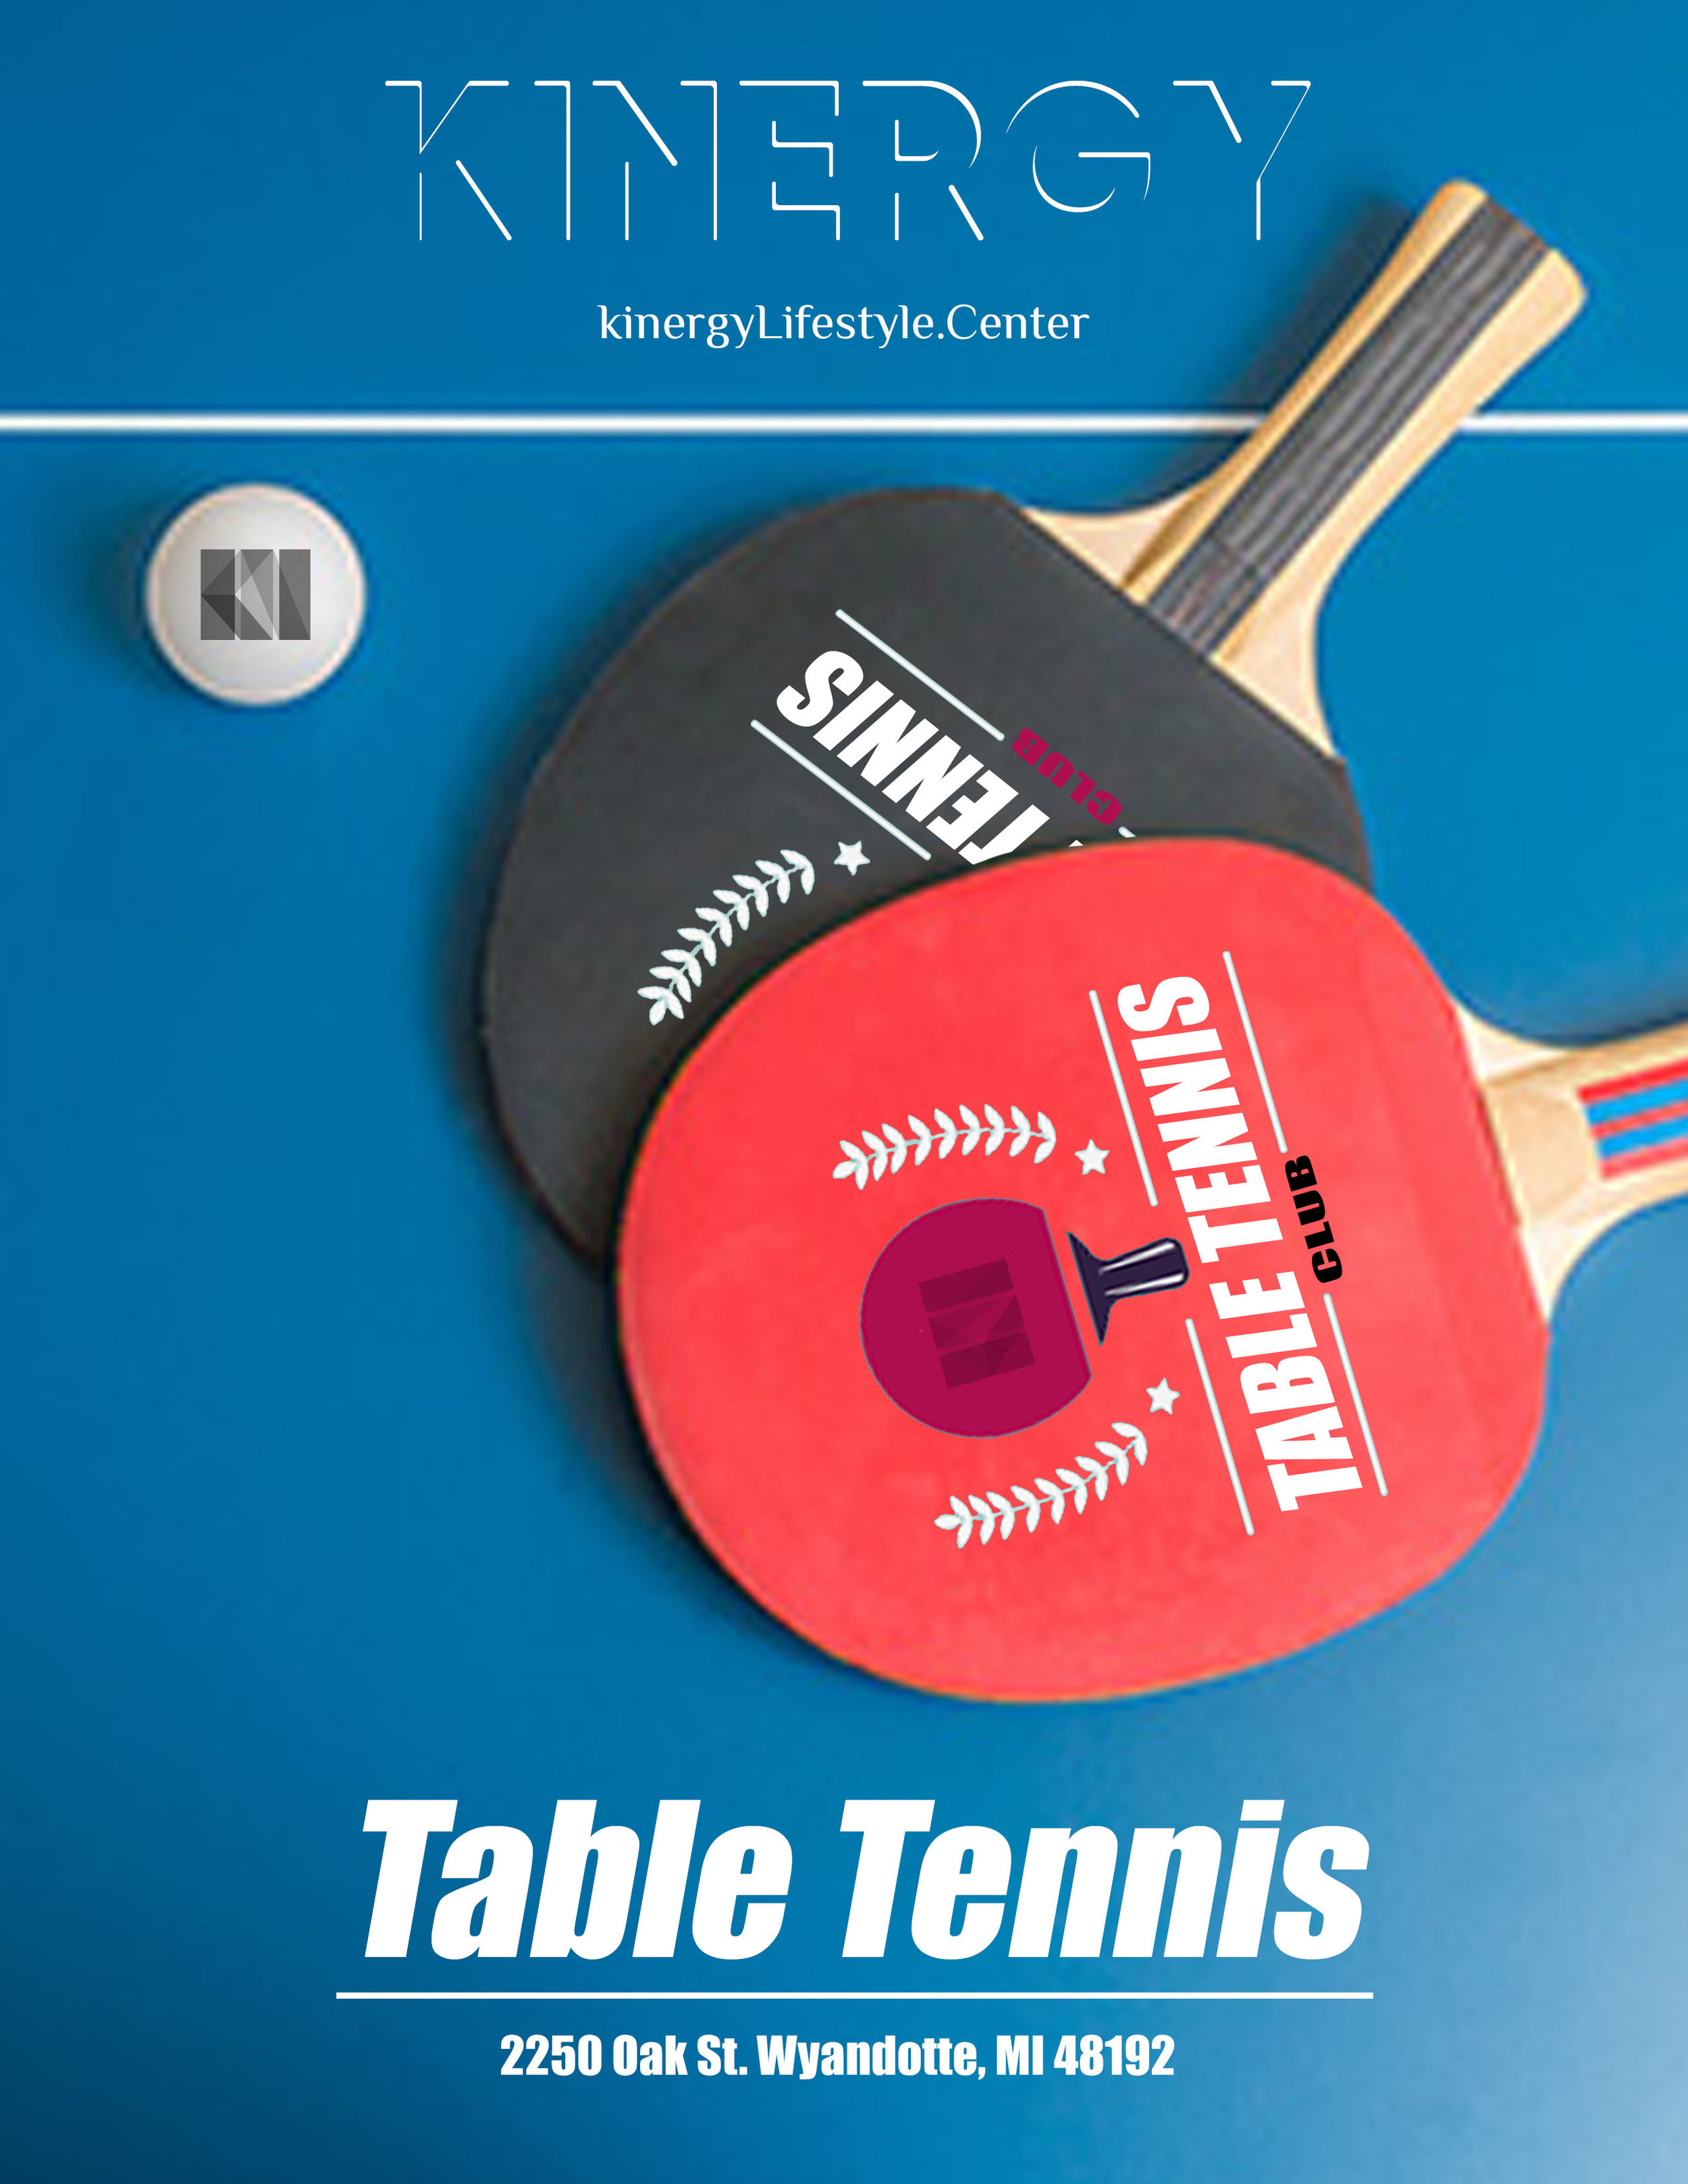 table tennis kinergy flyer.jpg